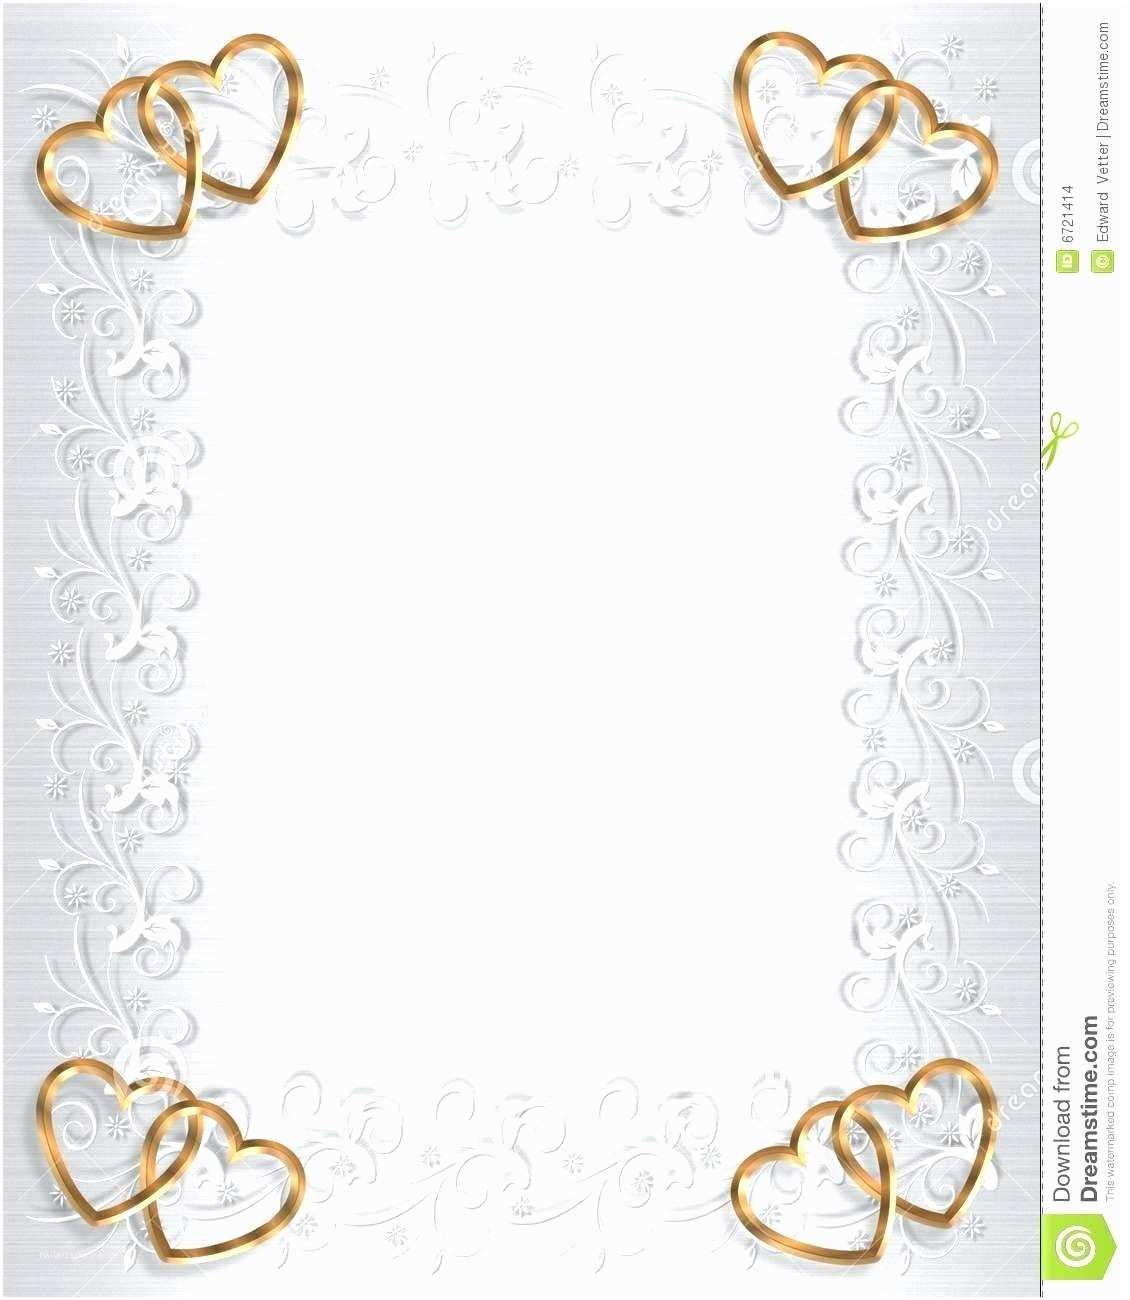 Butterfly Wedding Invitations Templates Tic butterfly Wedding Laser Cut Invitation Gatefold